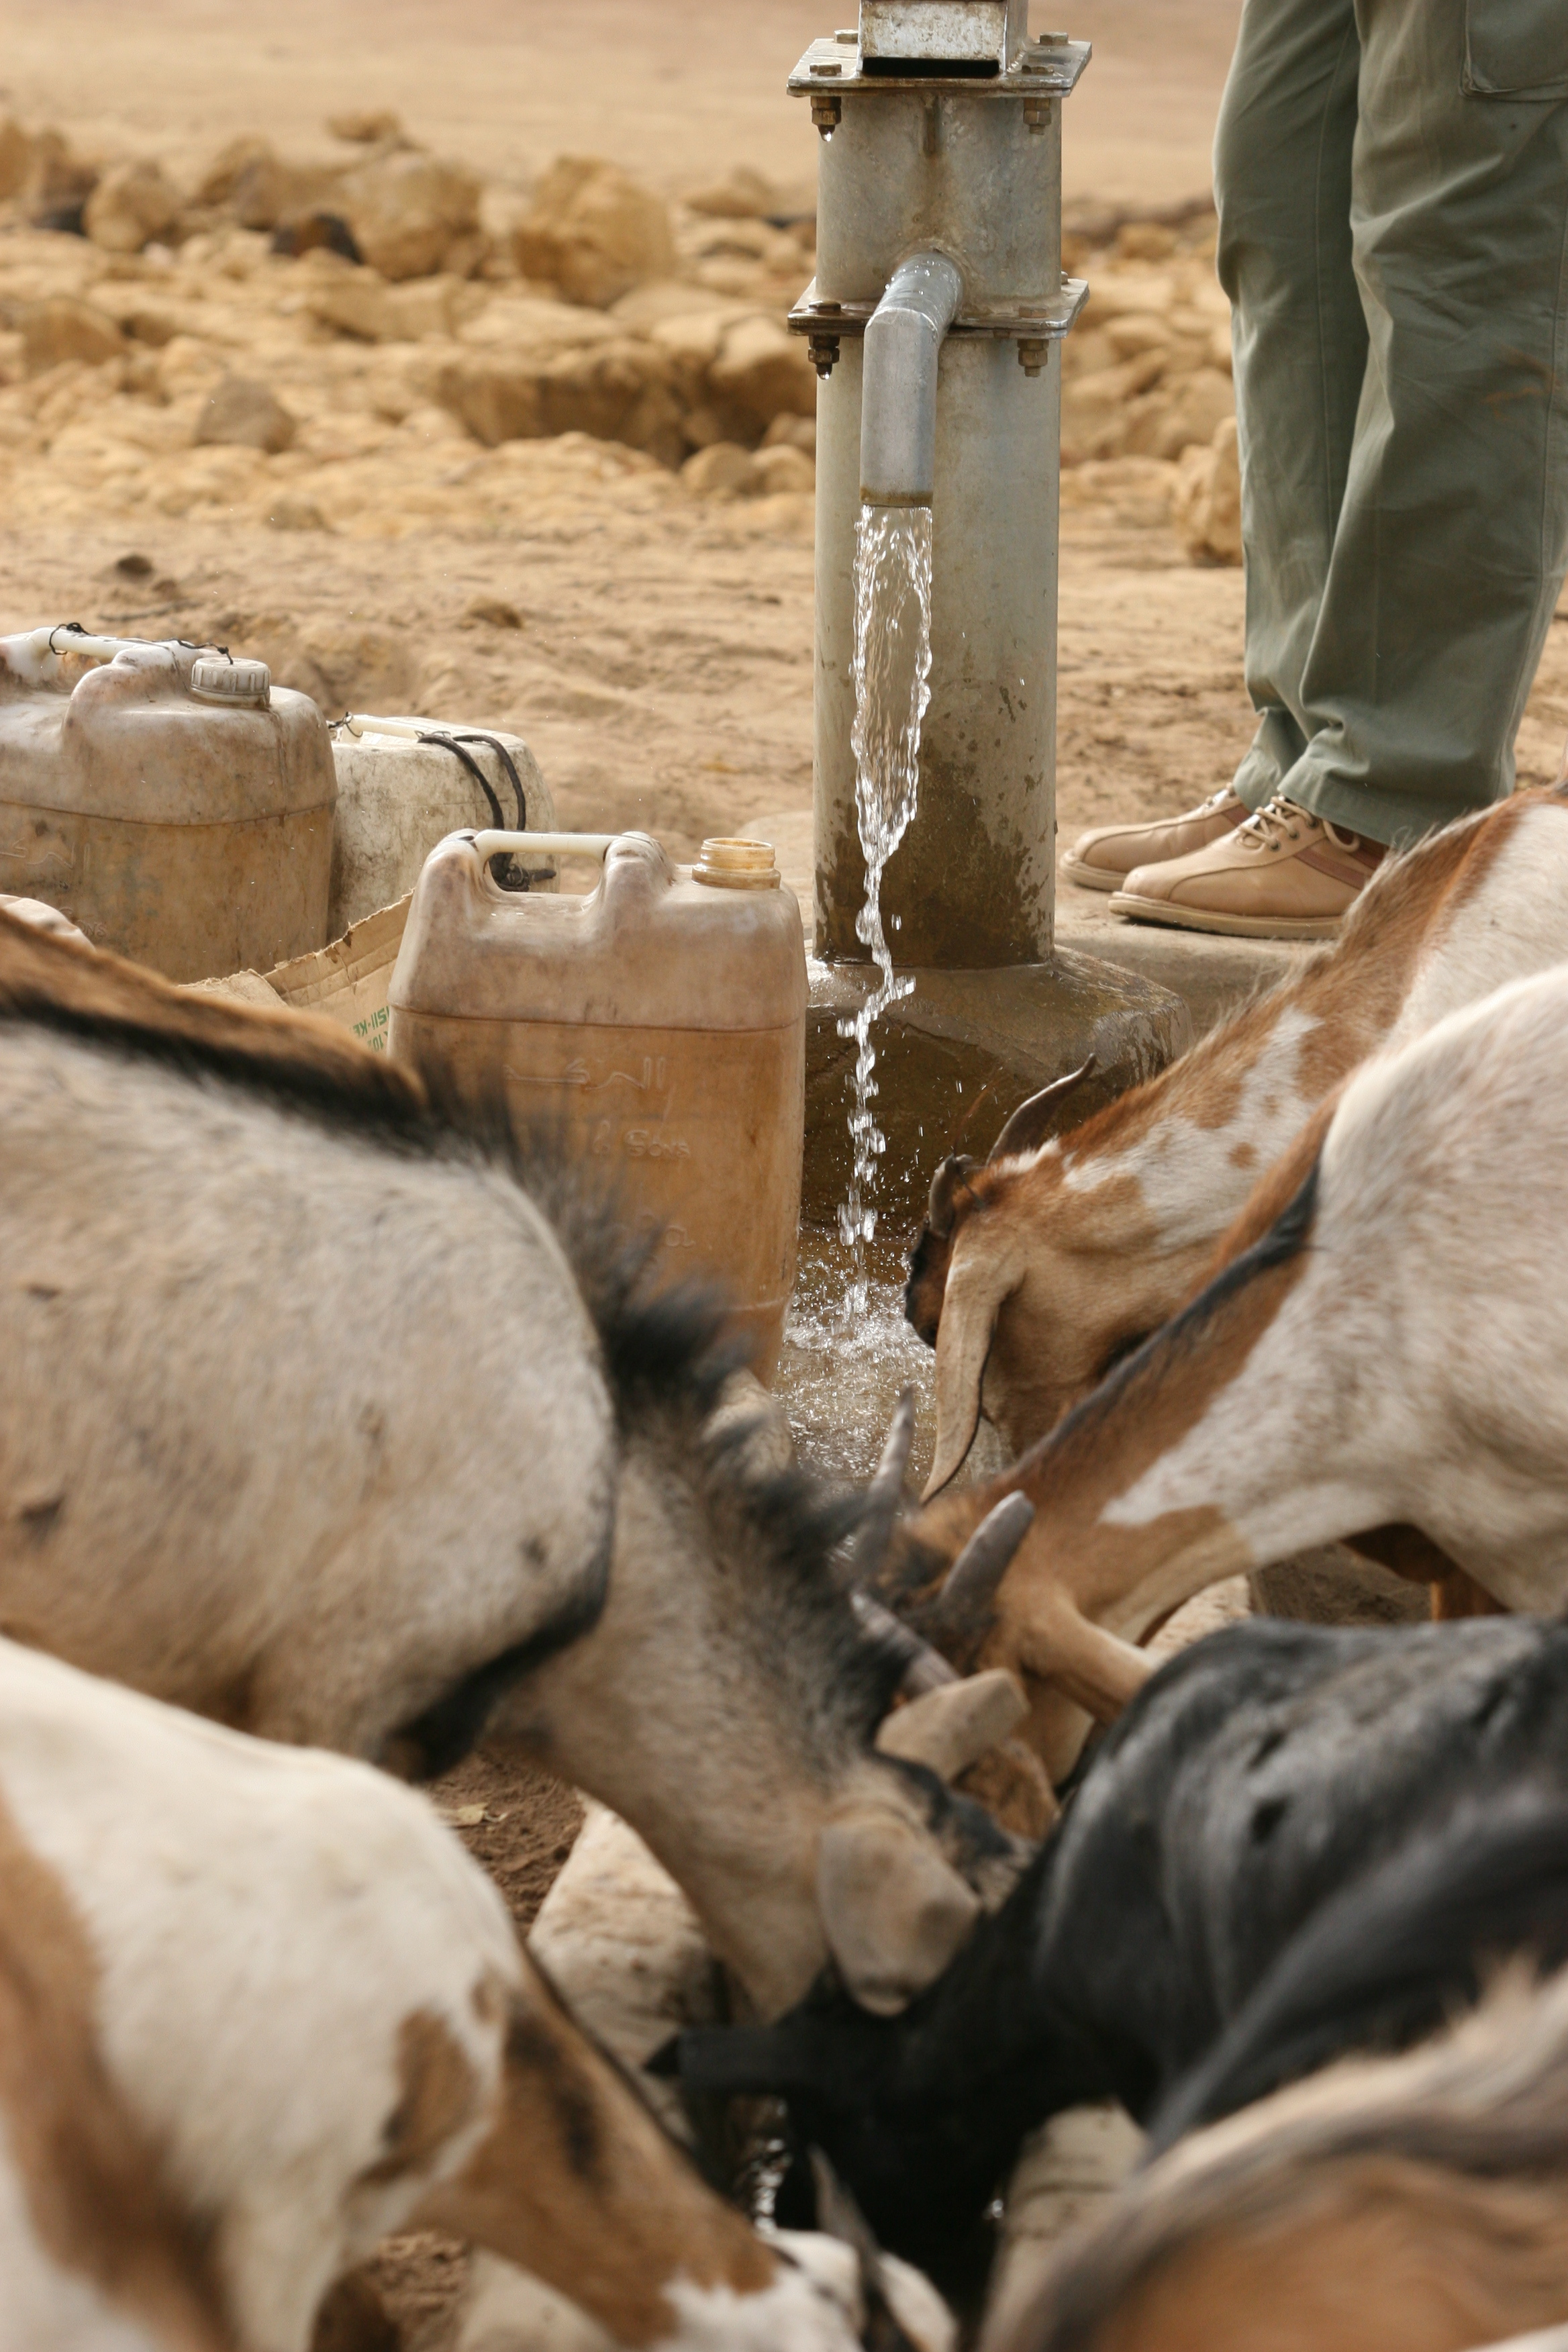 Animals also benefit from boreholes.JPG